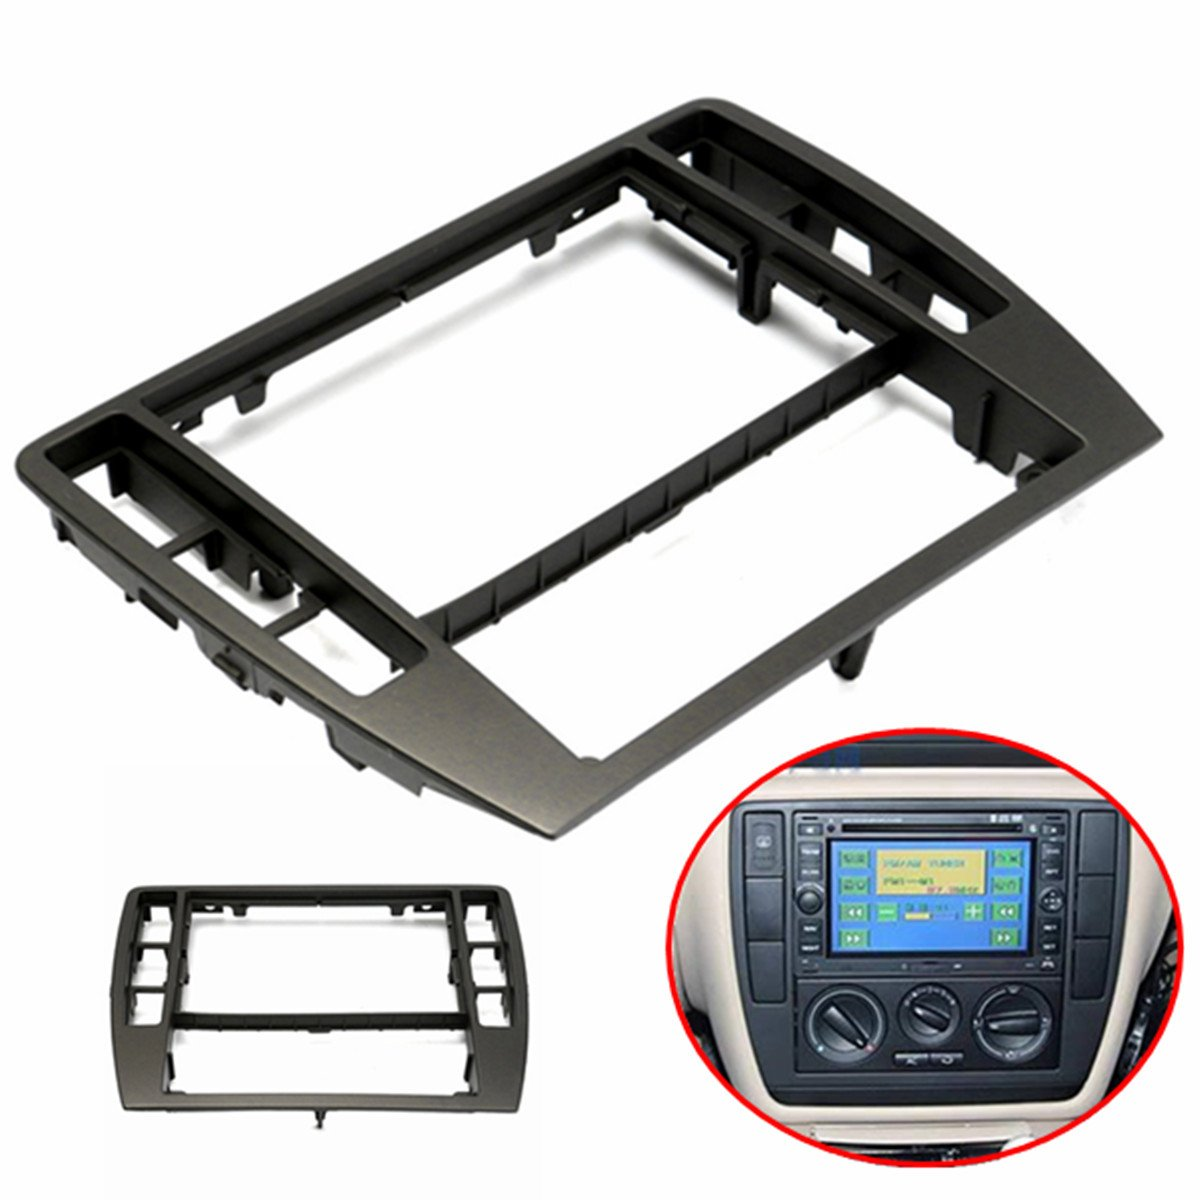 Car Repair Maintenance Frame Center Console Radio Panel for 2001-2005 VW Passat B5 WD-003-171